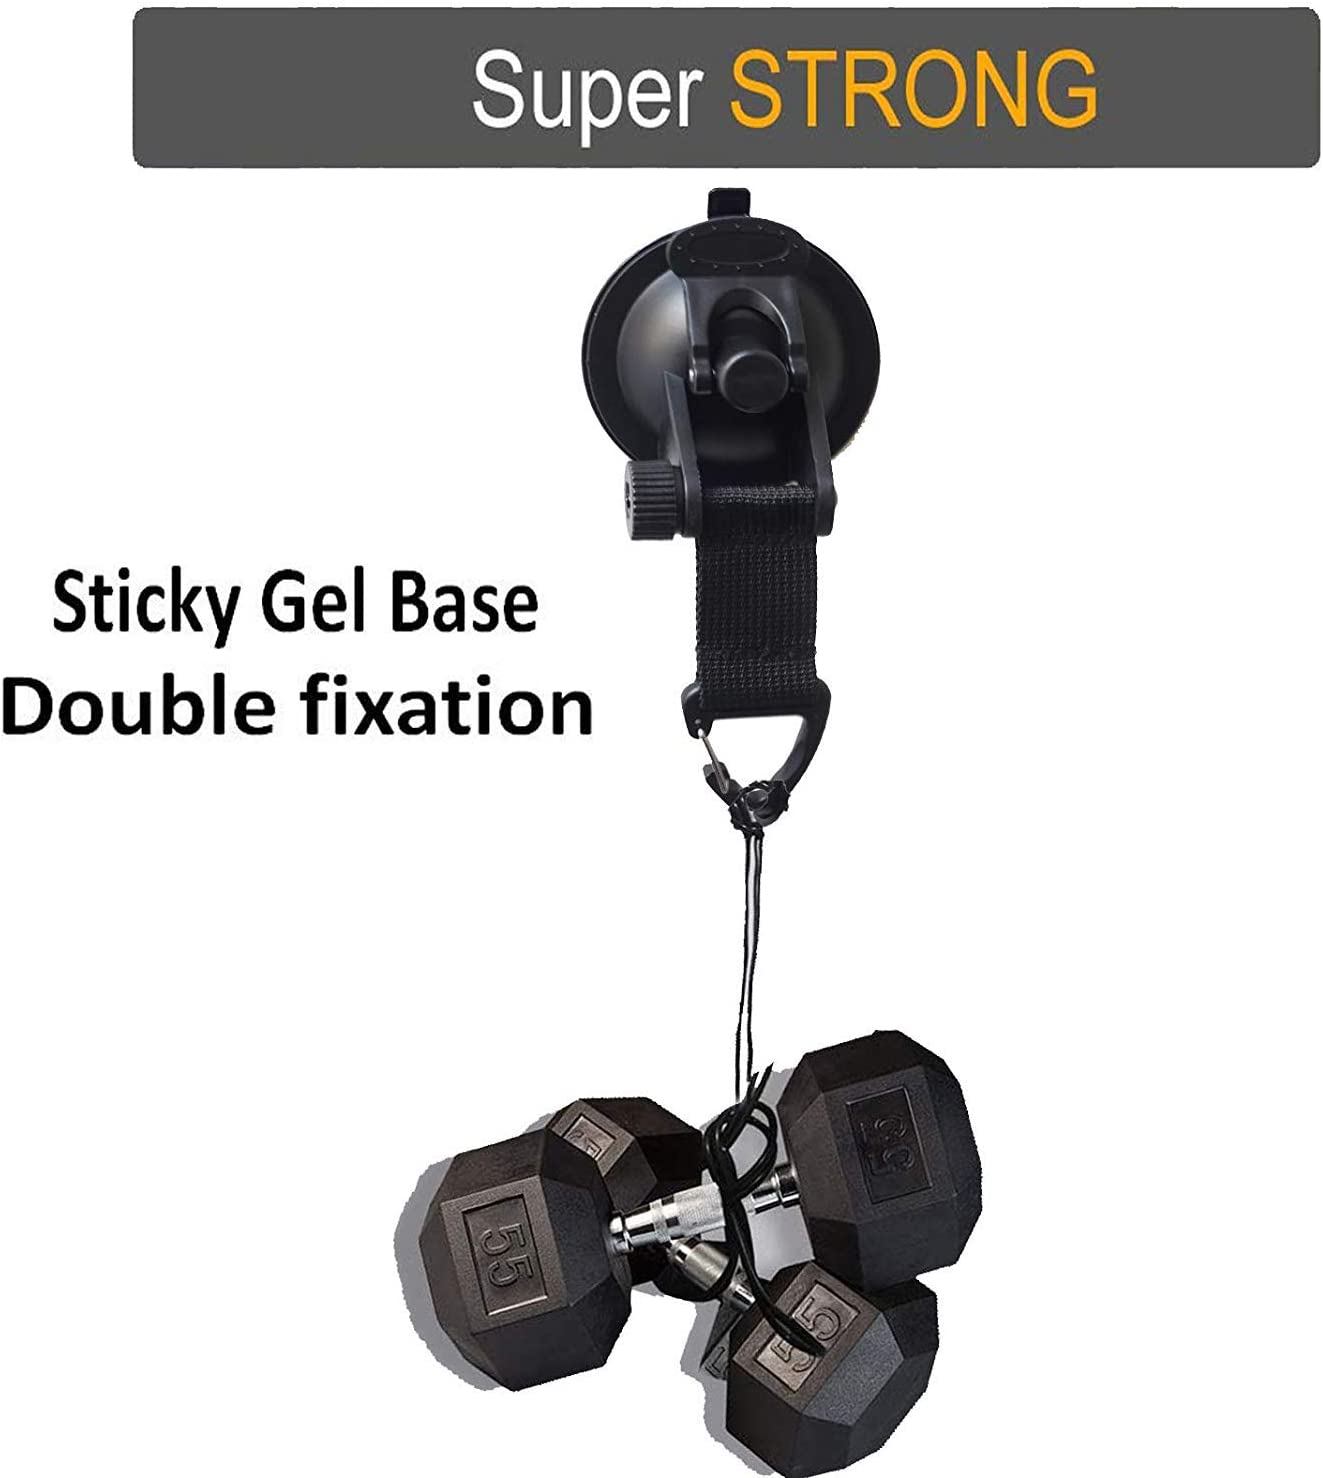 Hook Suction Cup,4pcs Multifunctional Super Suction Cup Suction Hook Suction CupTie for Car Mount Luggage Tarps Tents